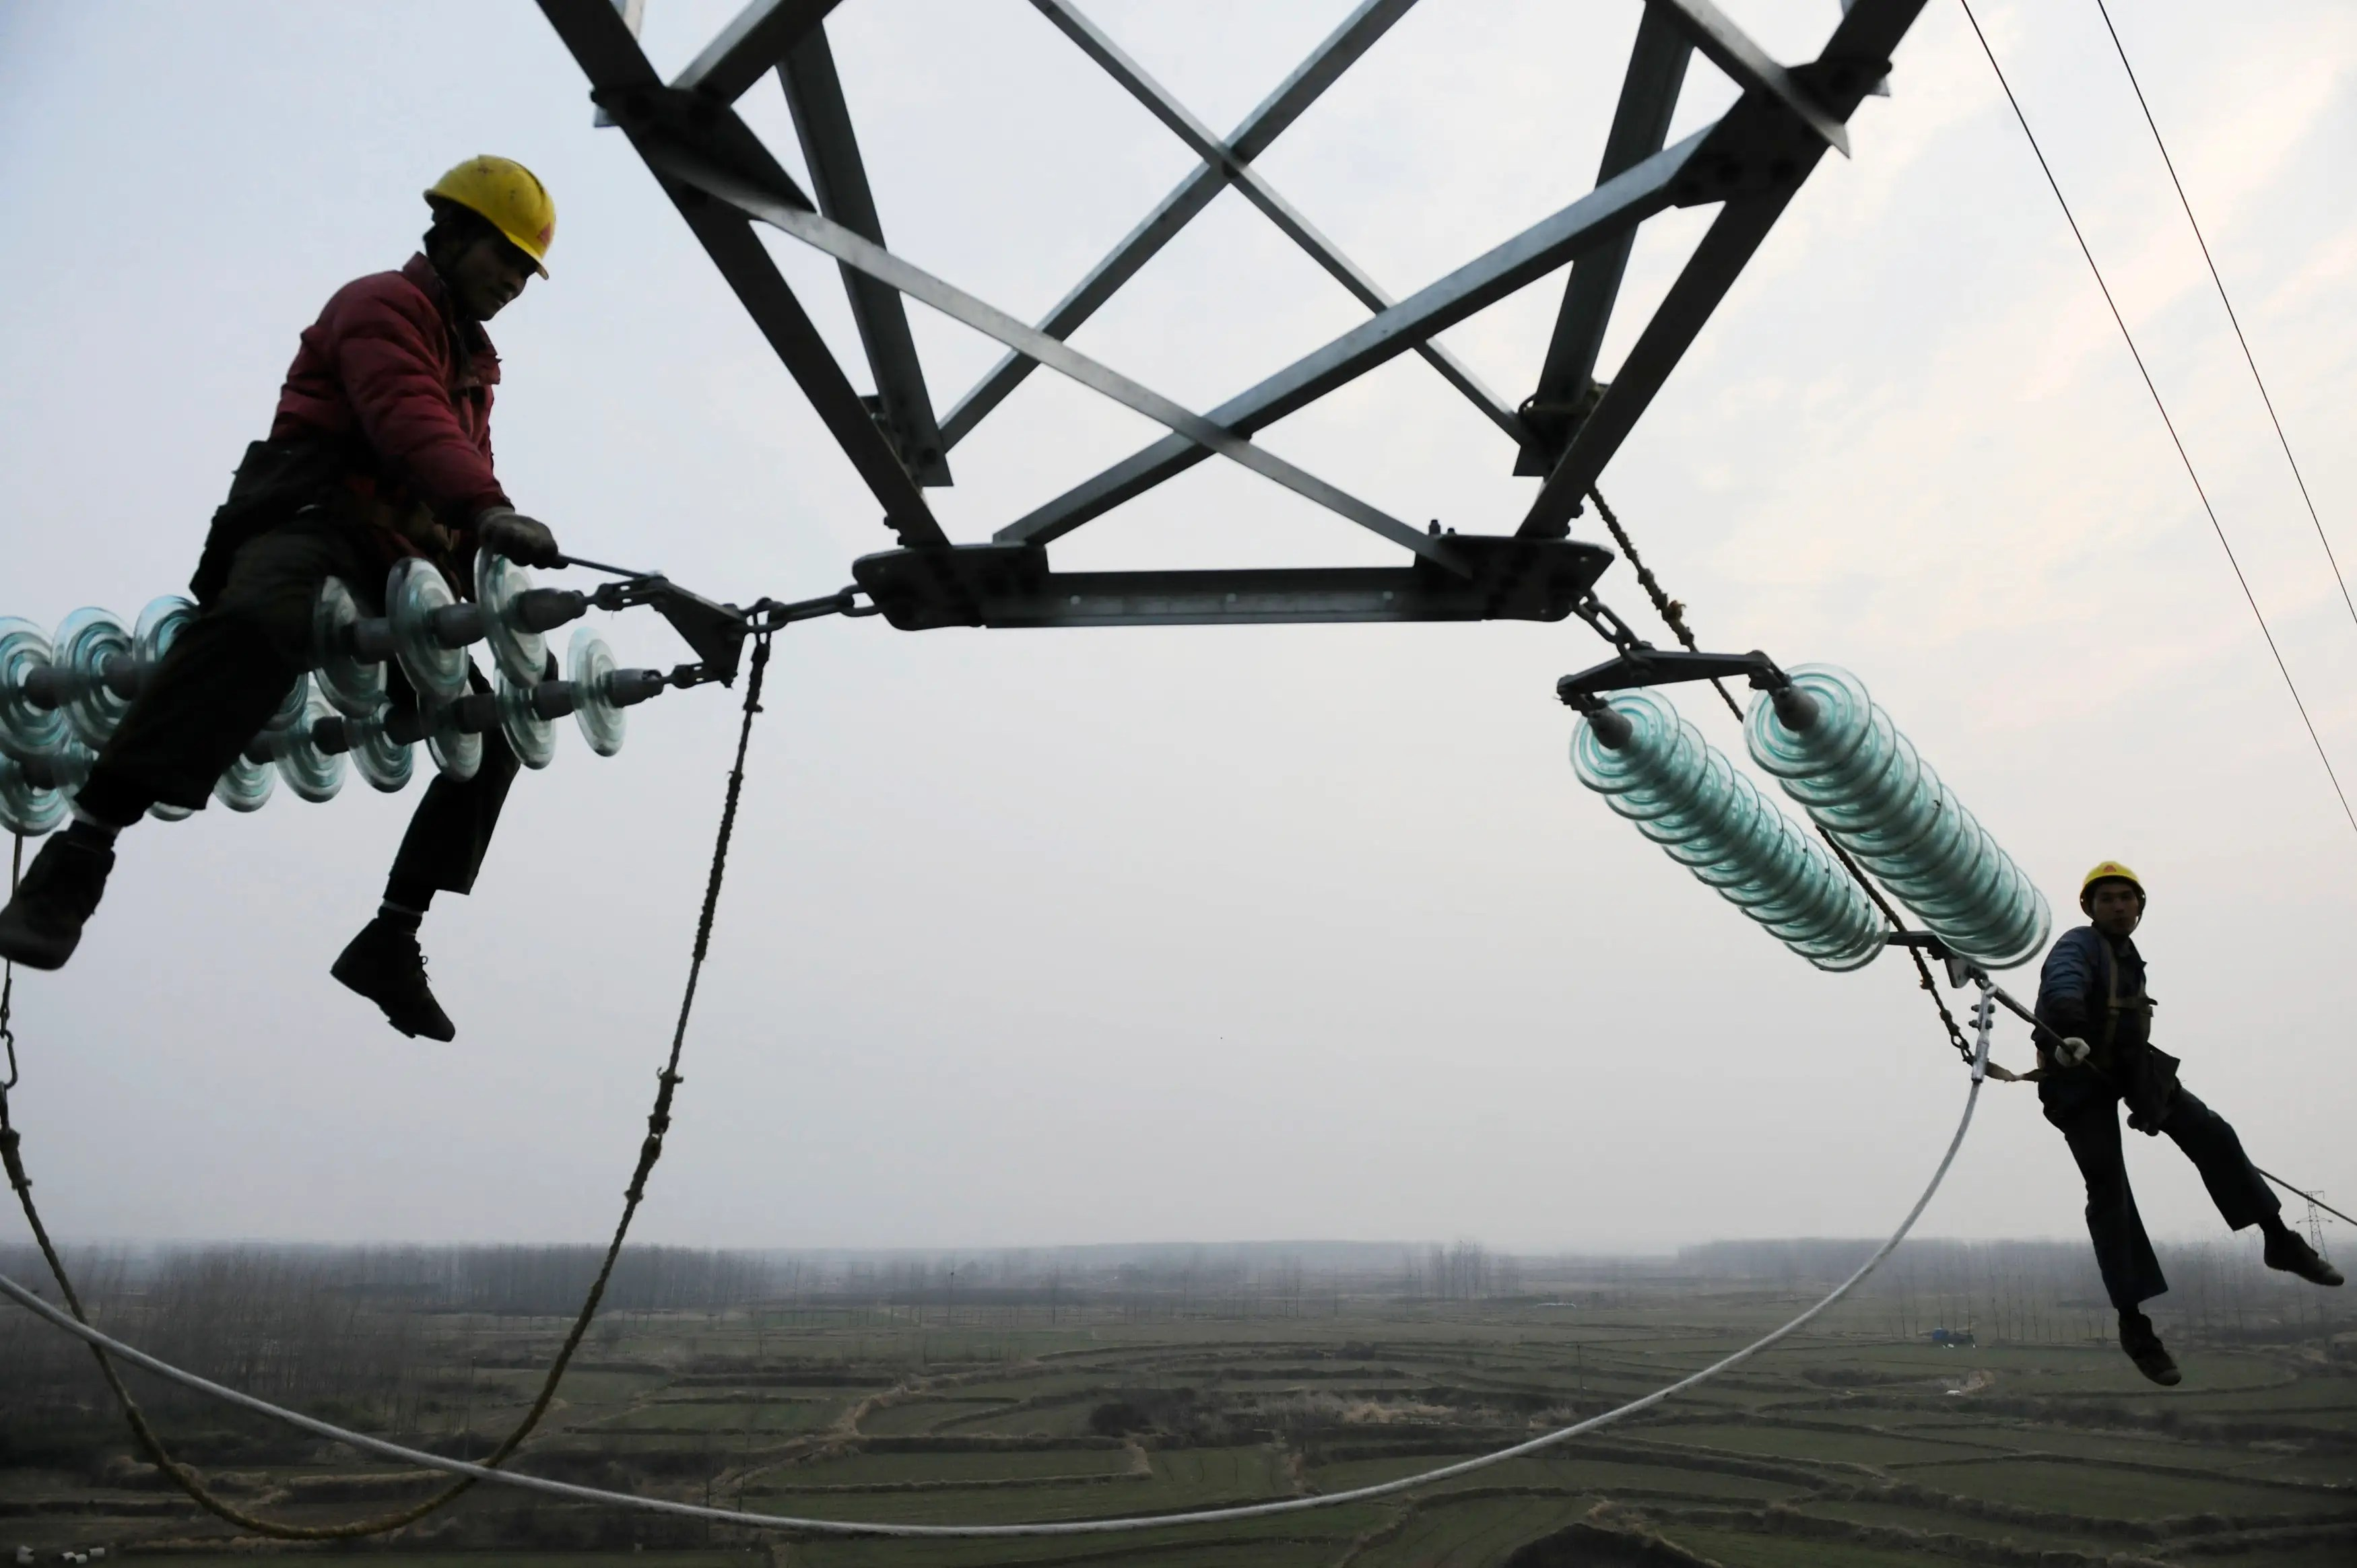 Employees work on a pylon in Chuzhou, in the Anhui province of China.